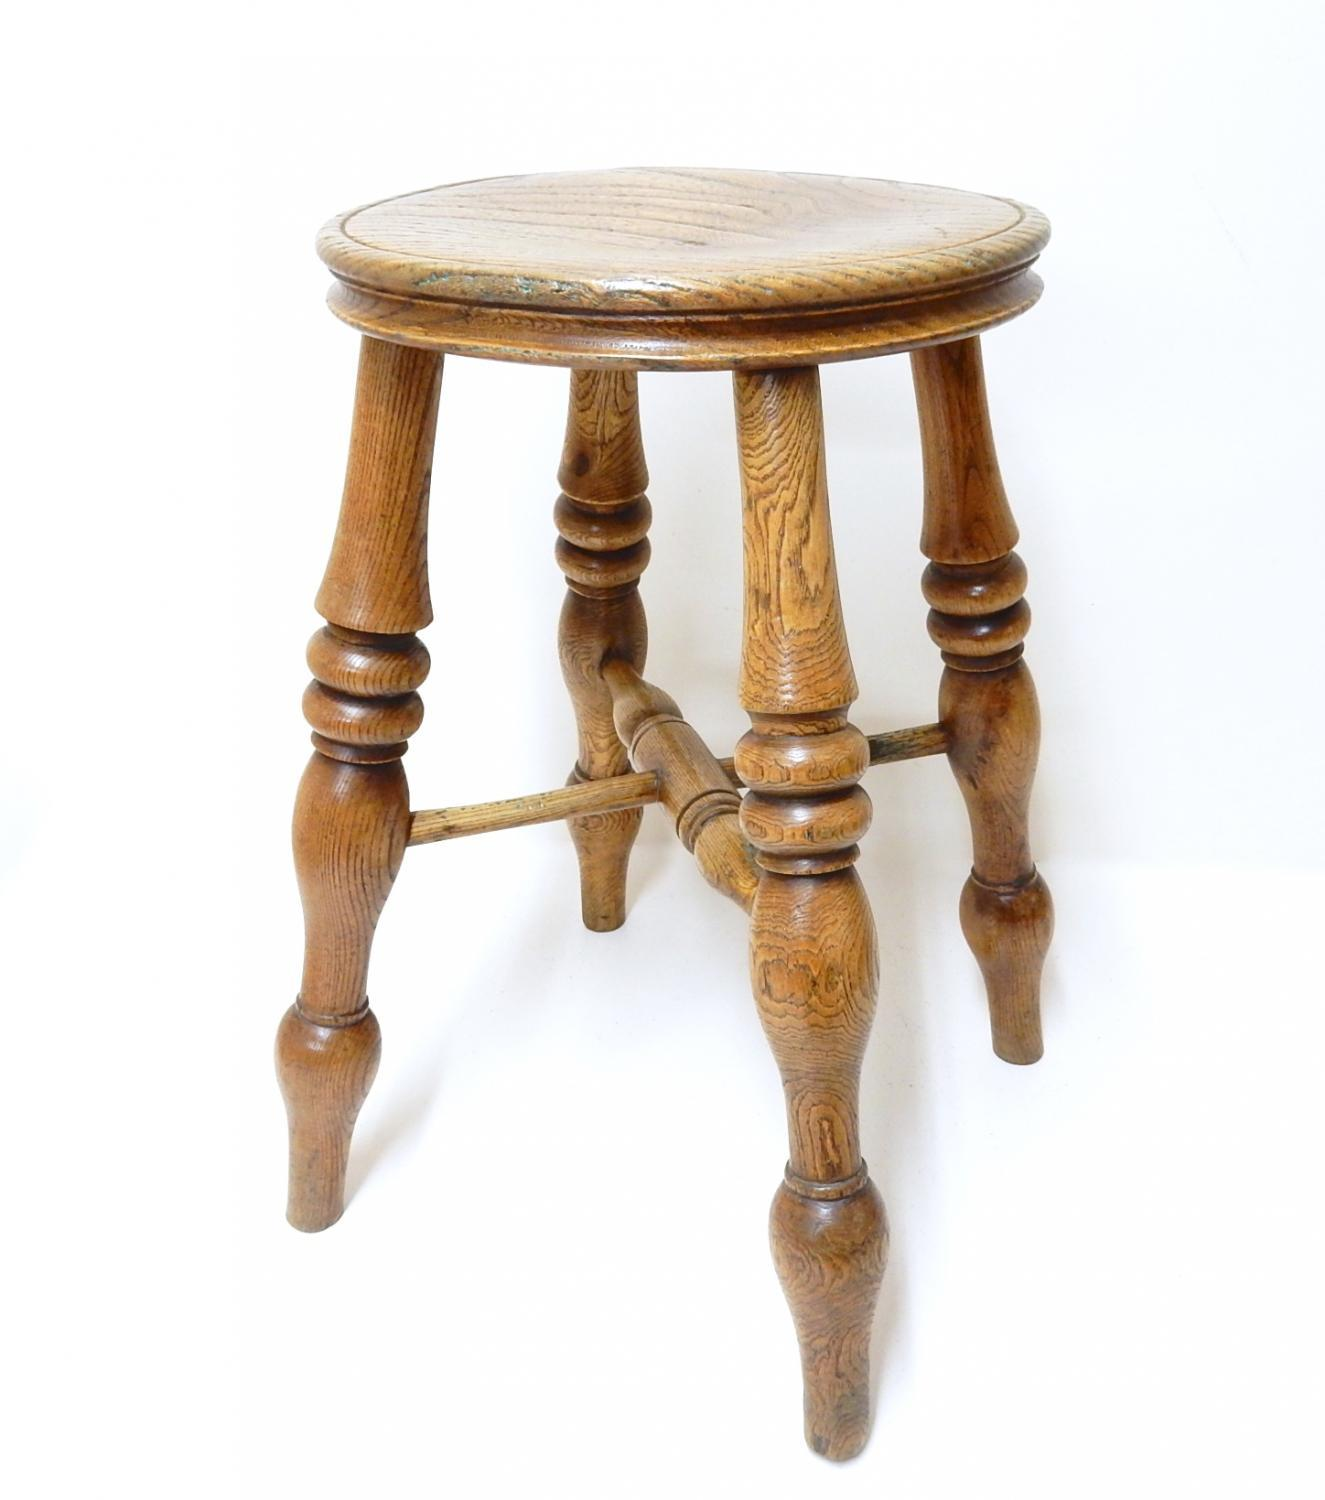 Bodger's Antique Windsor Stool